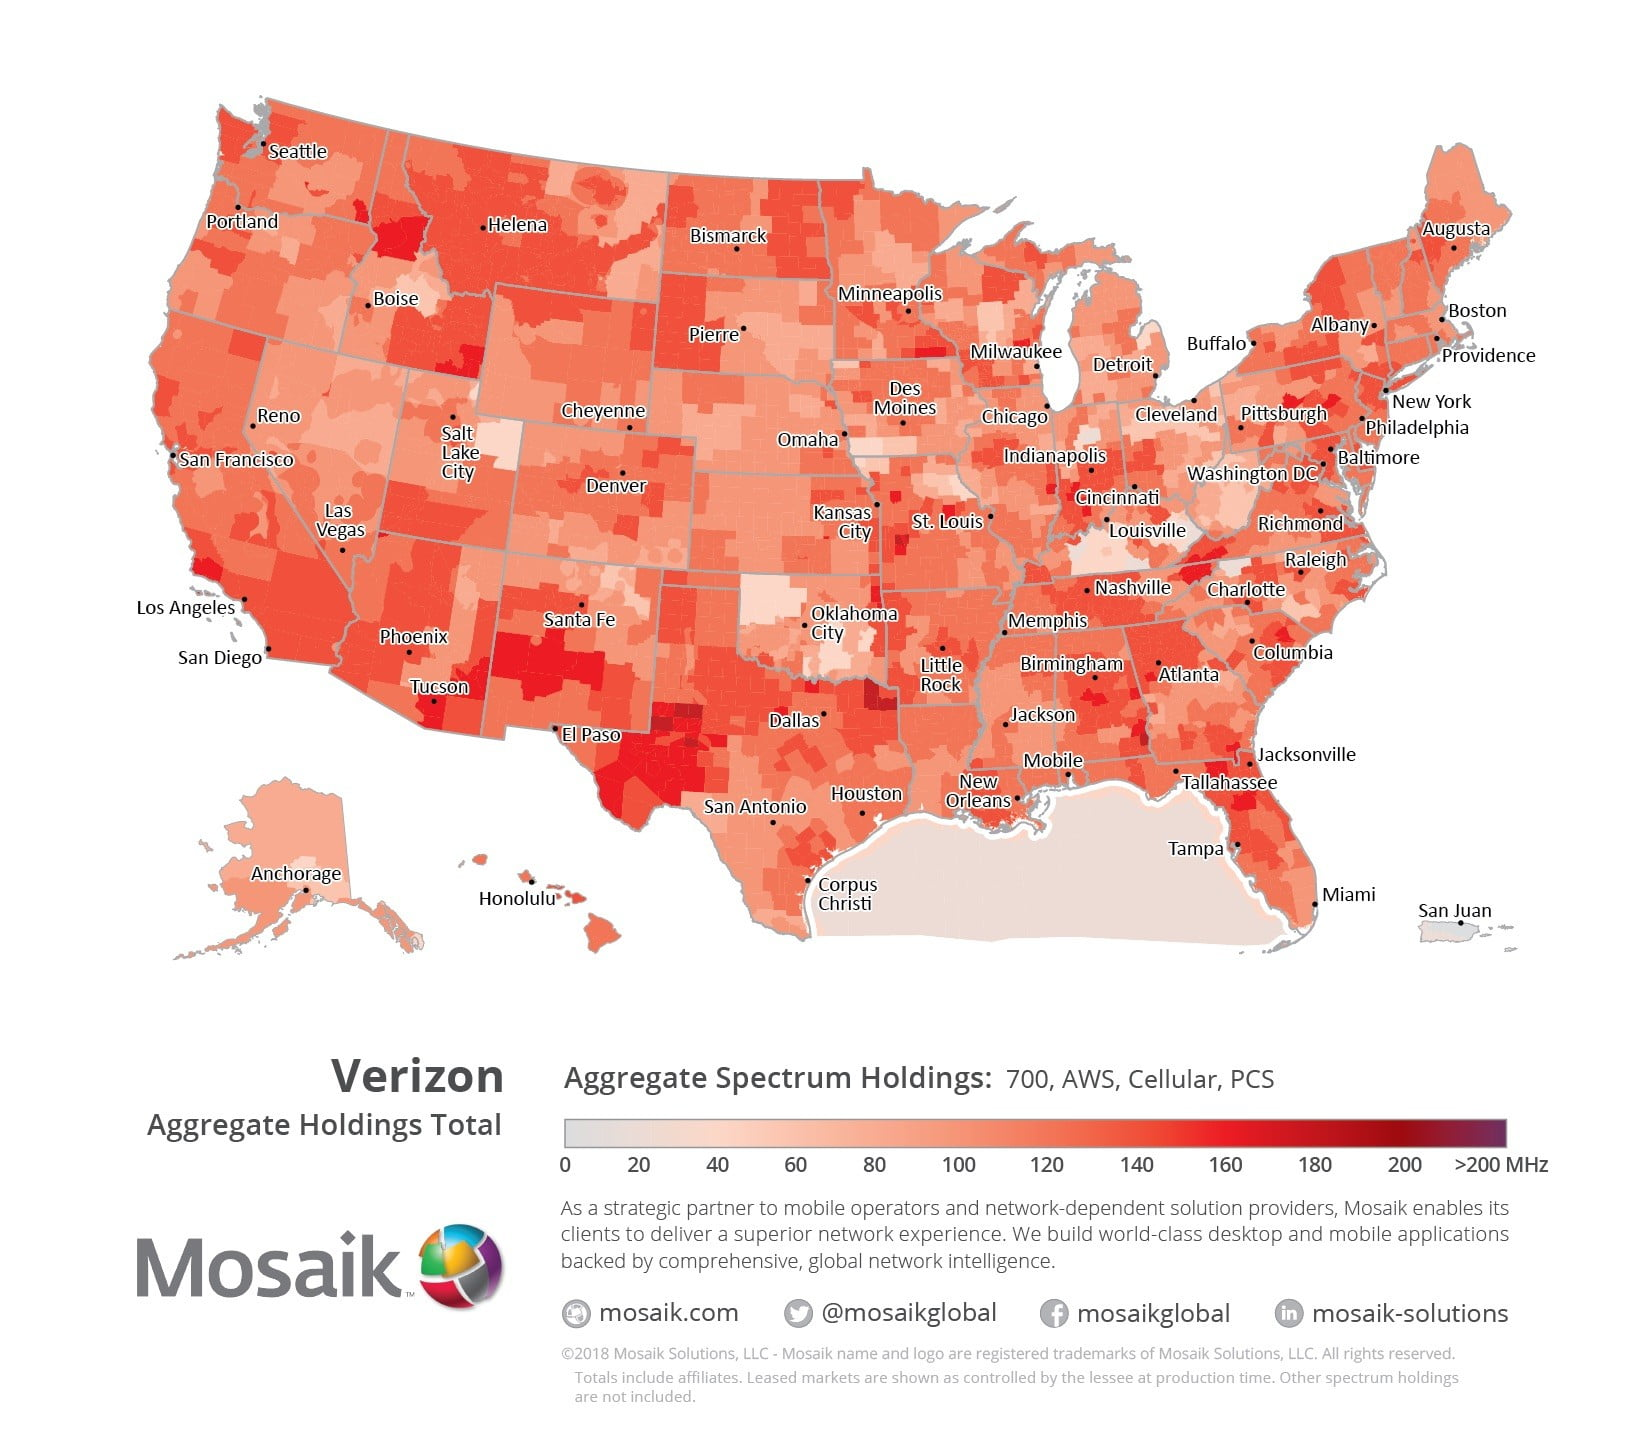 How The T-Mobile and Sprint Merger Could Affect You ... Cell Phone Coverage Map T Mobile on t-mobile service map, boost cell phone coverage maps, cricket cell phone coverage maps, sprint cell phone coverage maps, prepaid cell phone coverage maps, wireless cell phone coverage maps, cell phone tower location maps, verizon cell phone coverage maps, national cell phone coverage maps, t-mobile lte map, virgin cell phone coverage maps, cell phone provider coverage maps, t-mobile covearge map, best cell phone coverage maps, t-mobile cell tower, t-mobile compatible cell phones, cell phone companies coverage maps, cell phone network coverage maps, t-mobile unlocked cell phones, t-mobile reception map,